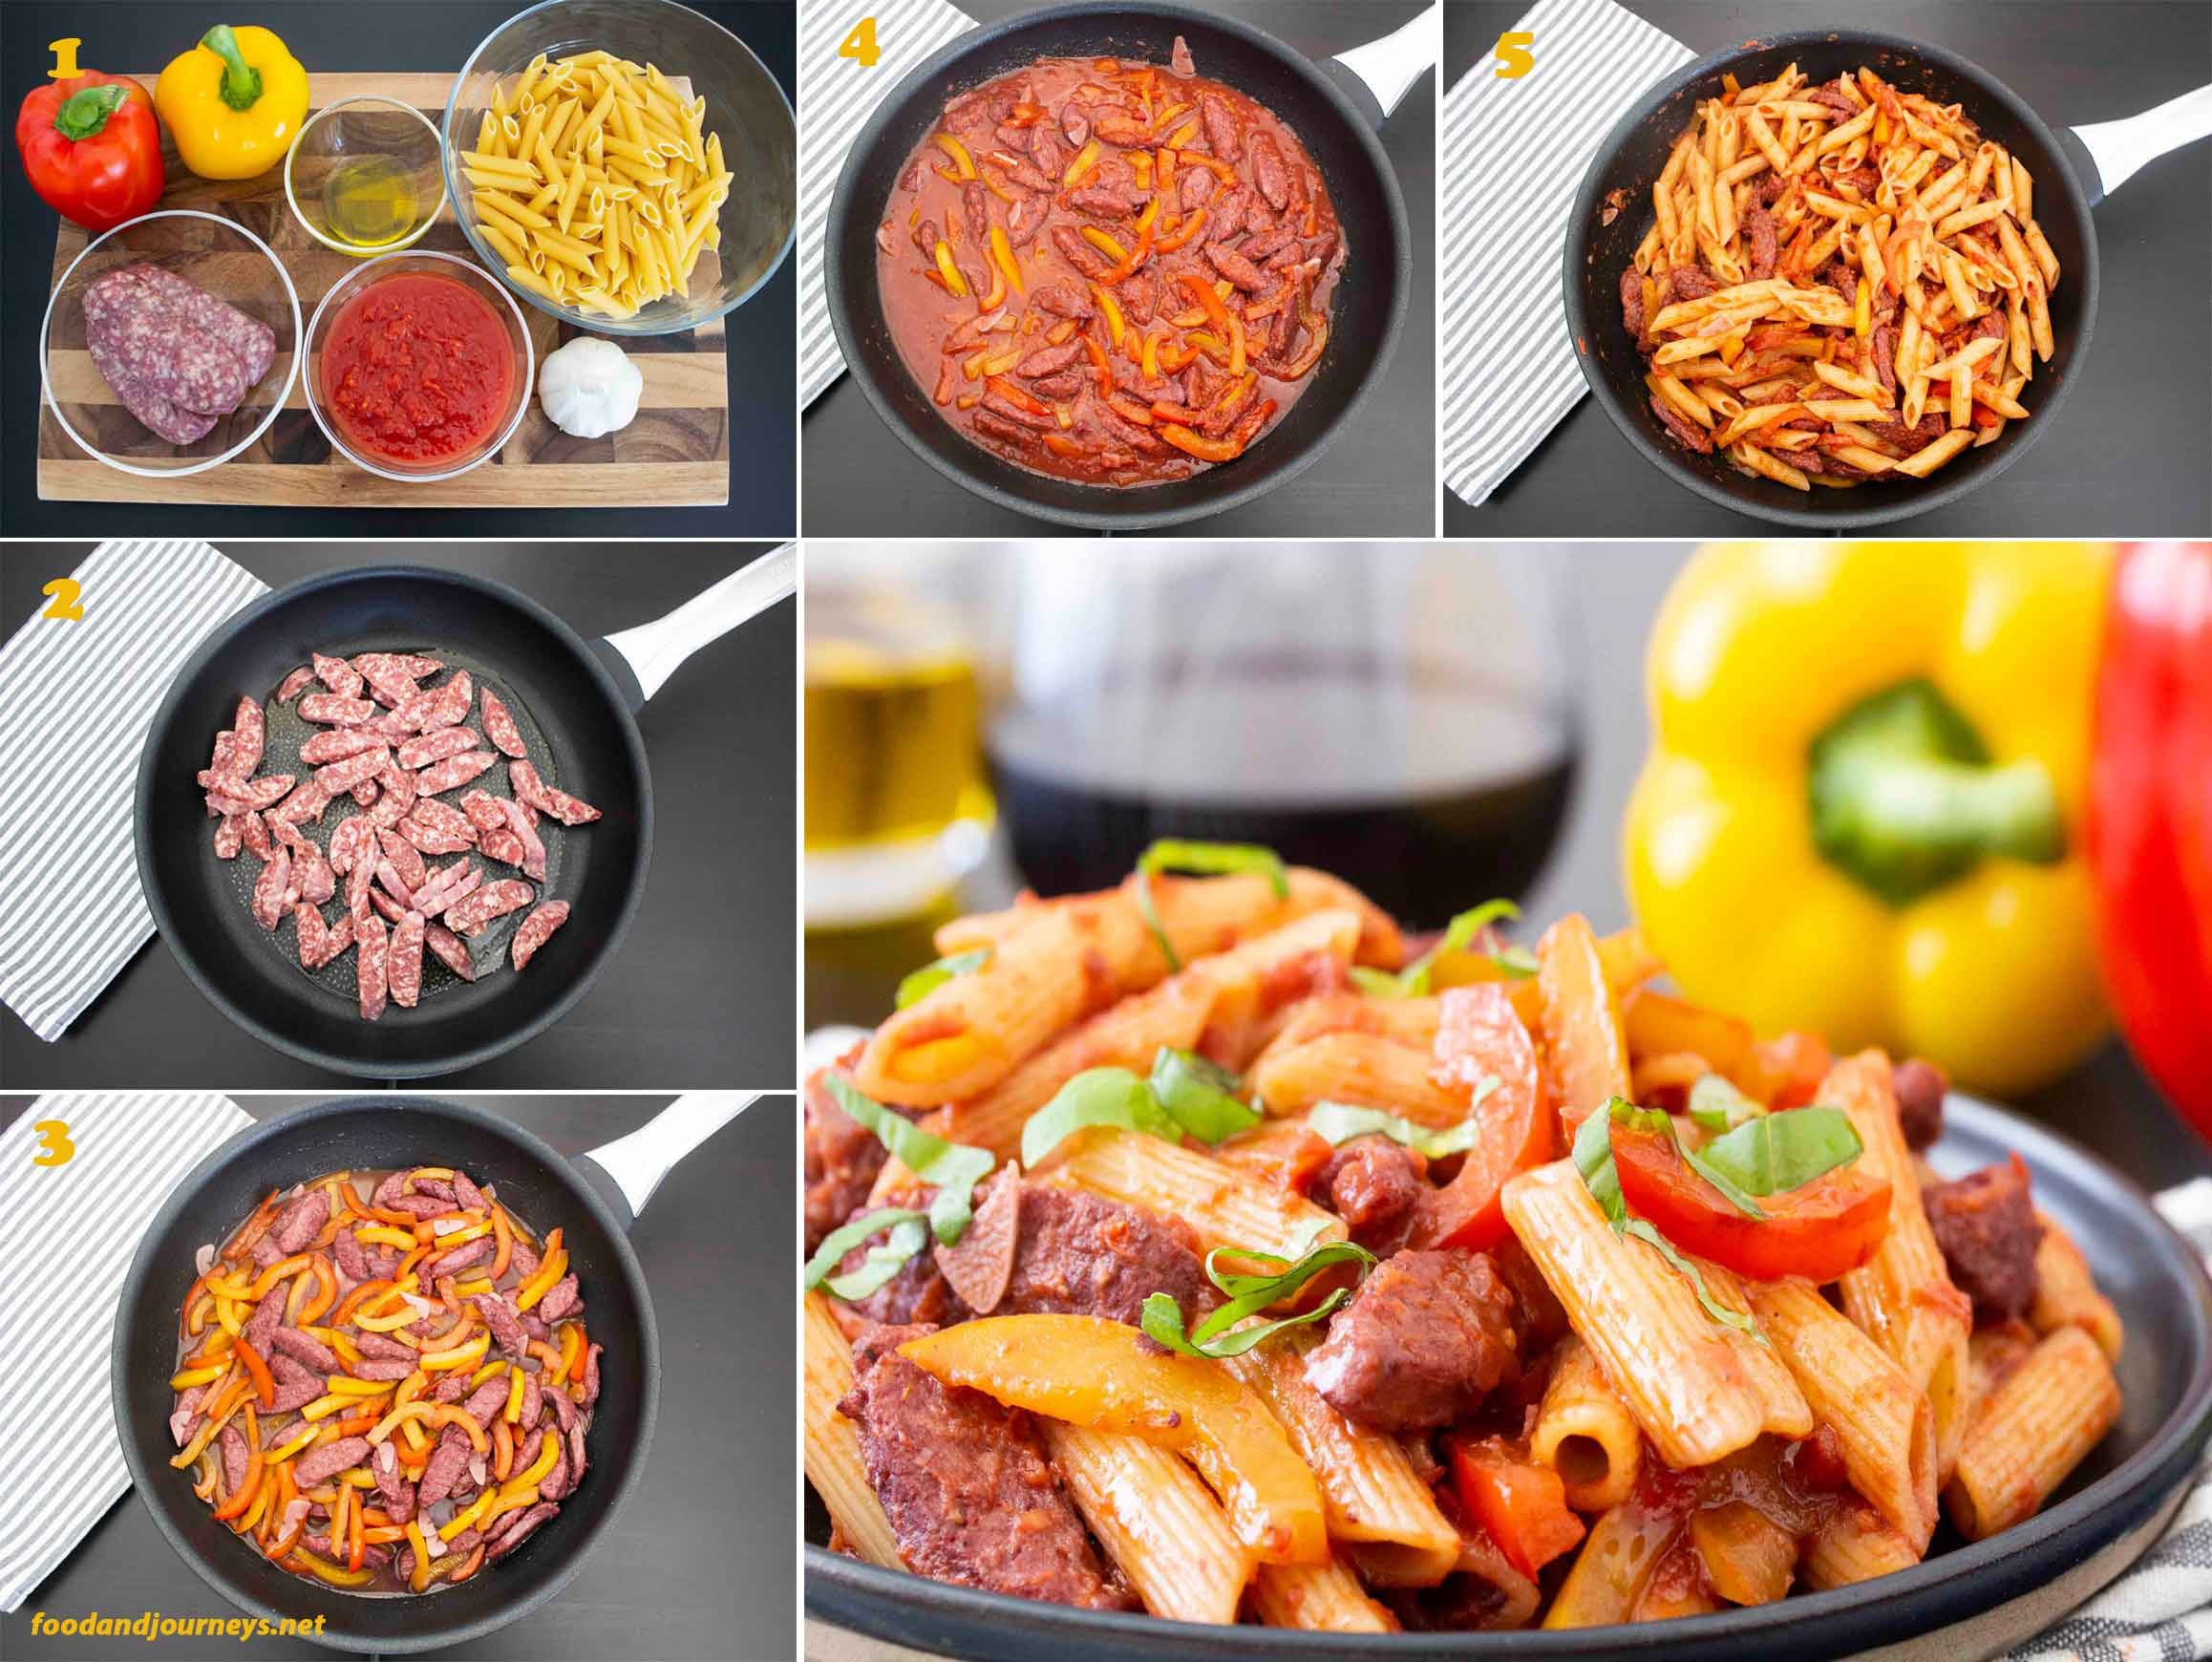 Collage of images showing the step by step process on how to make Pasta with Sausage and Peppers.